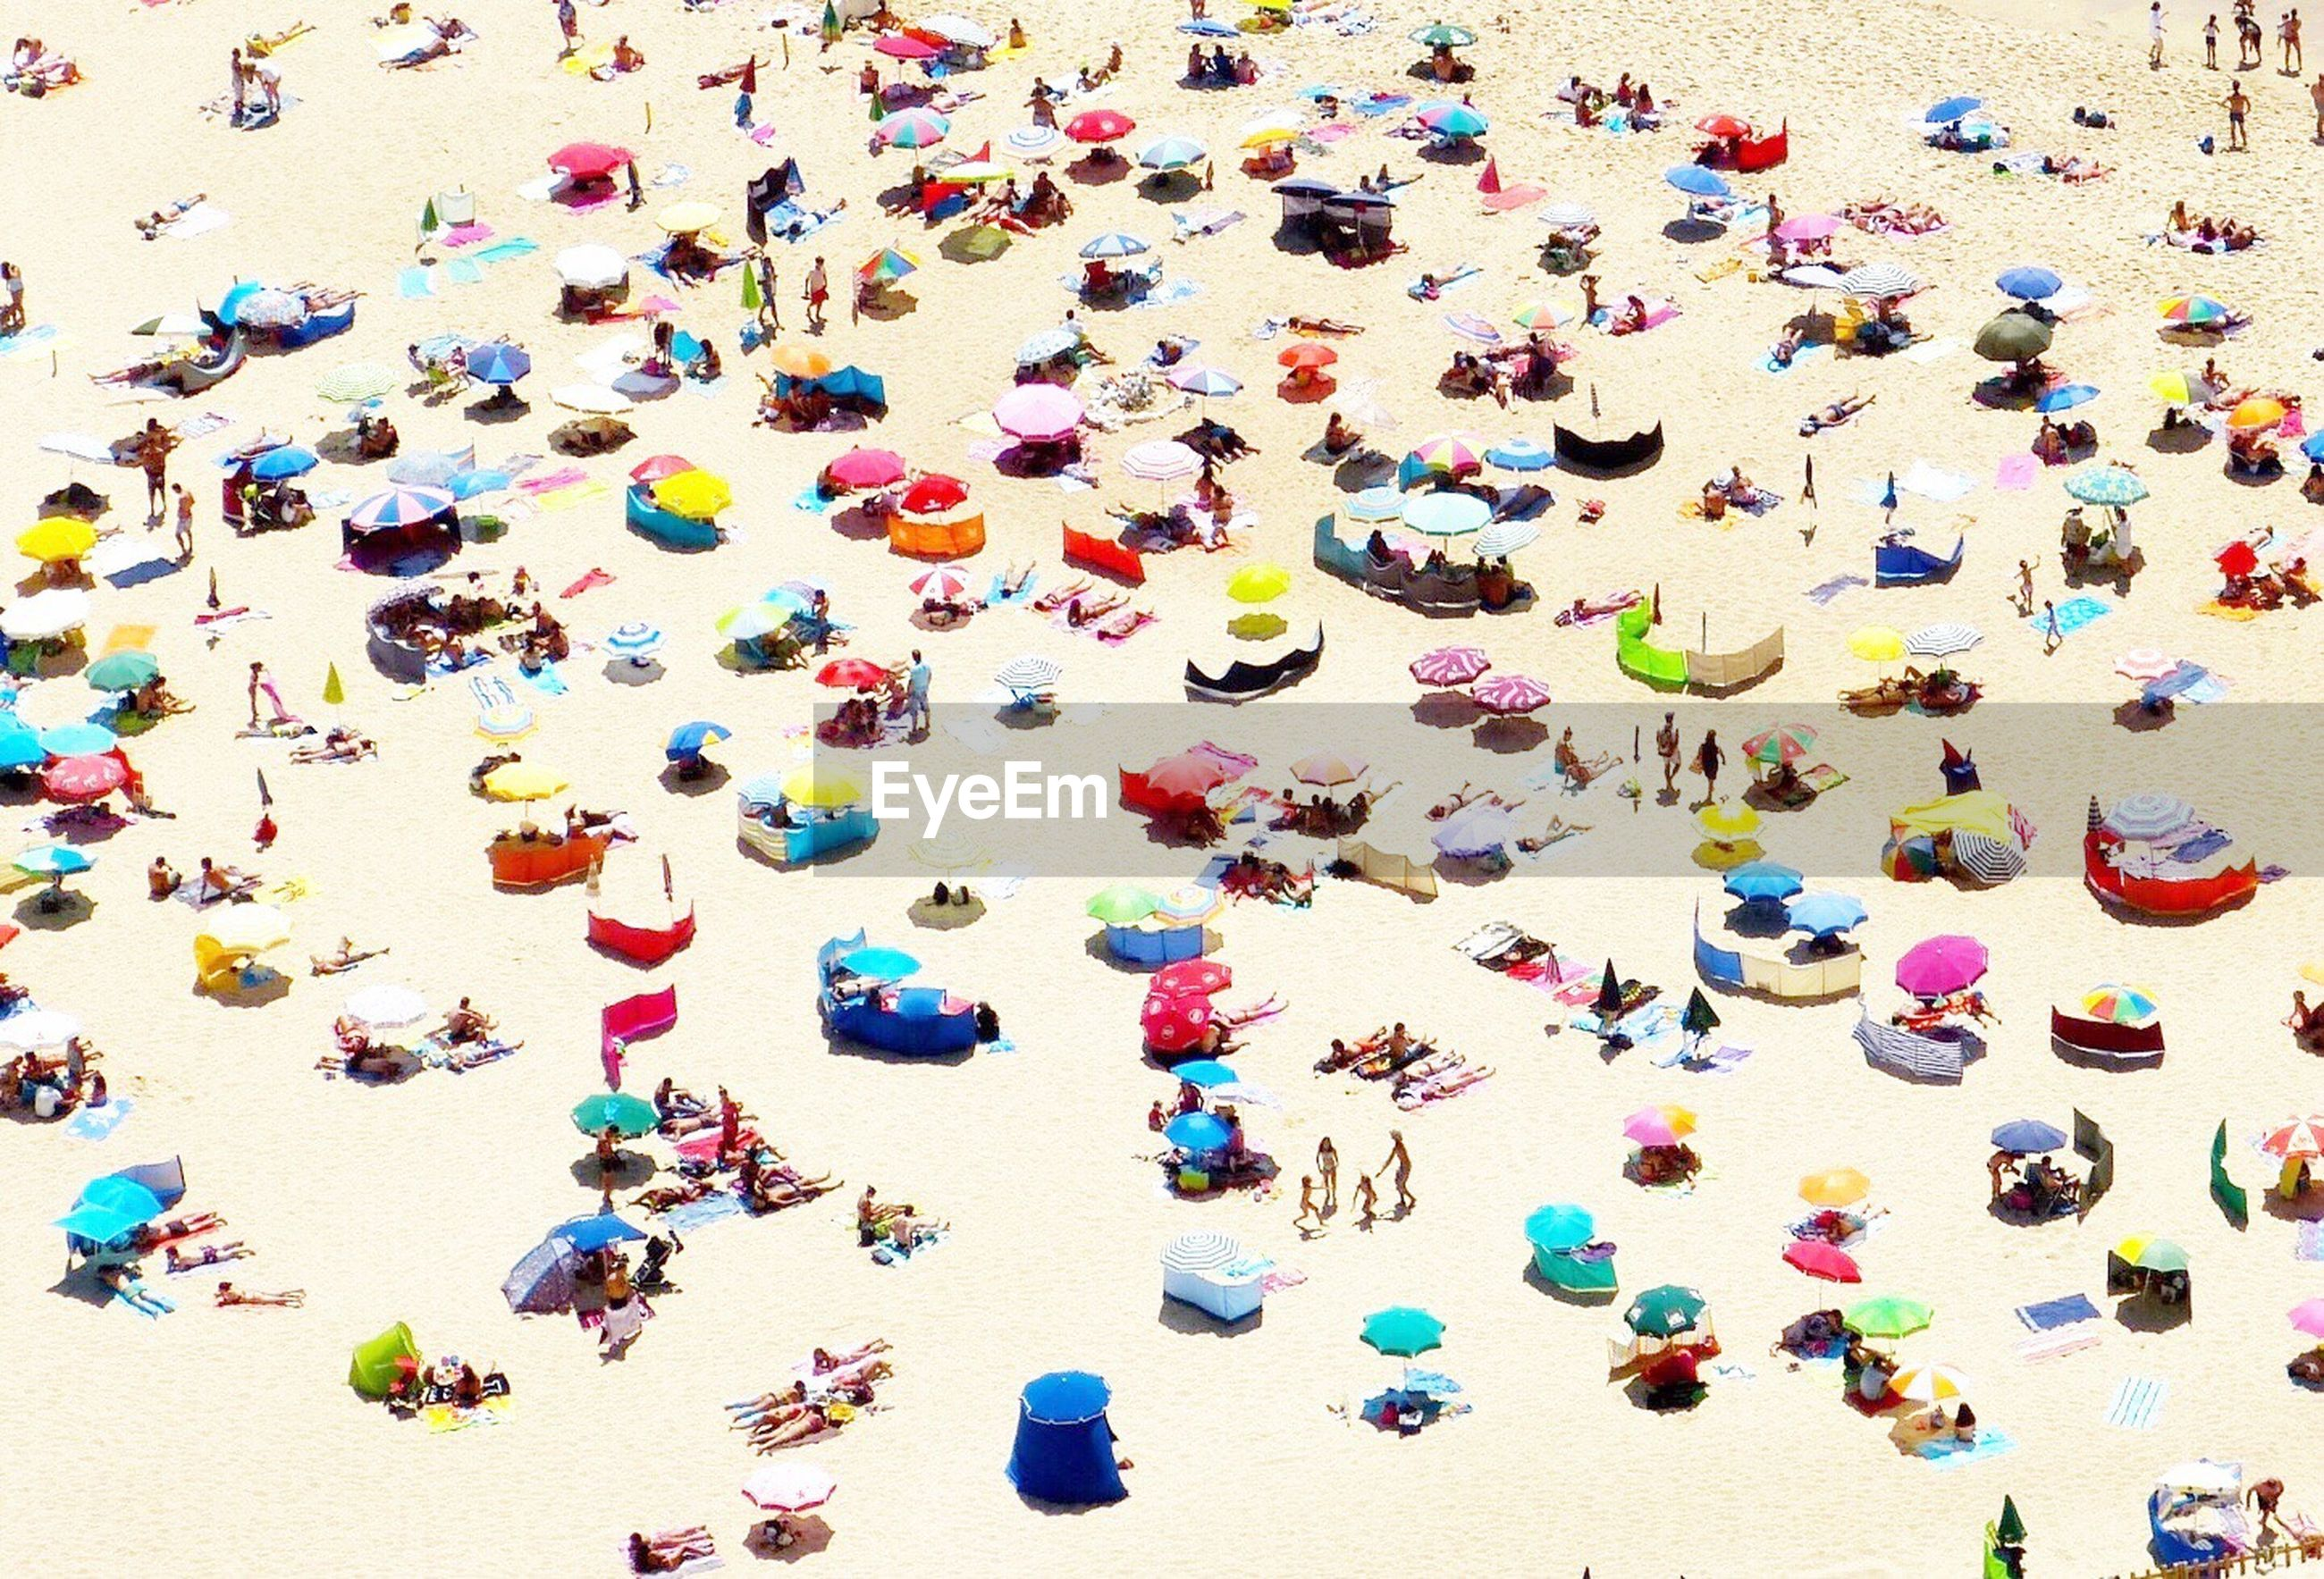 High angle view of people and parasols at beach during sunny day